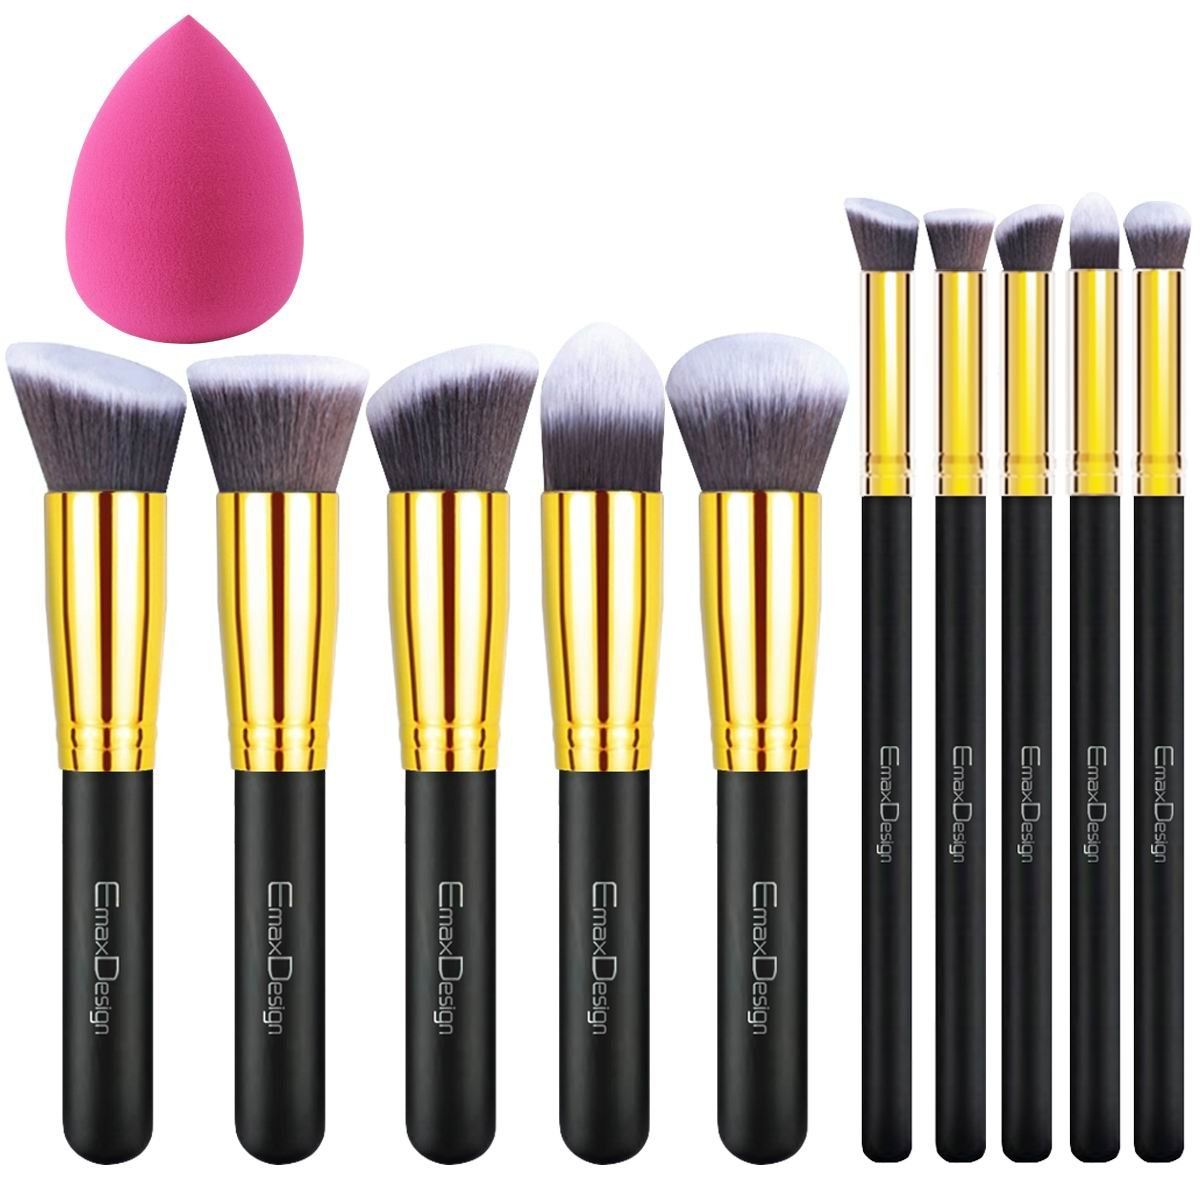 EmaxDesign 10+1 Pieces Makeup Brush Set, 10 Pieces Professional Foundation Blending Blush Eye Face Liquid Powder Cream Cosmetics Brushes & 1 Piece Rose Red Beauty Sponge Blender